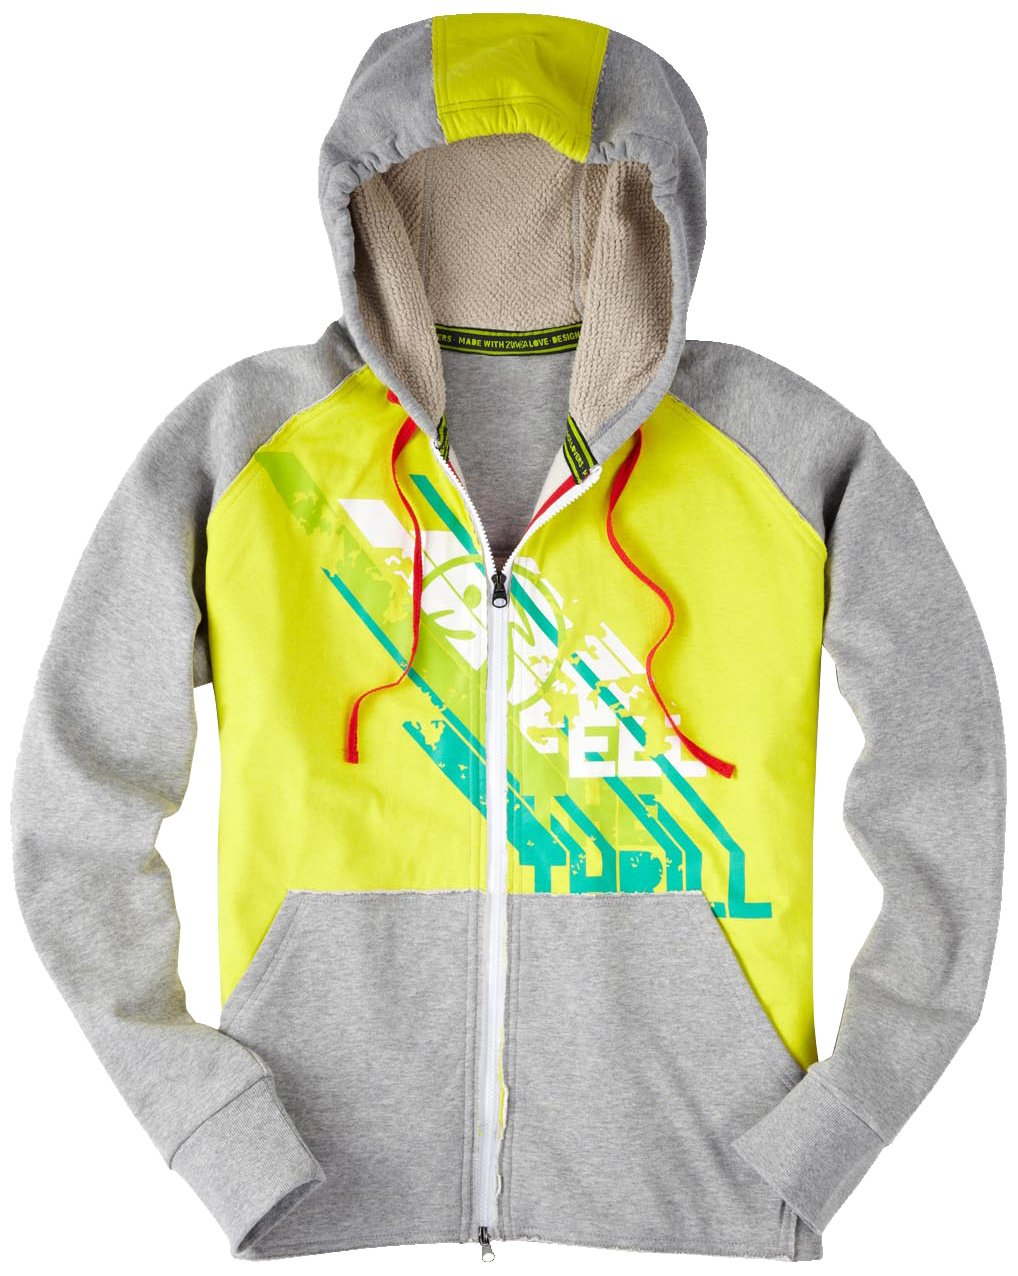 Zumba Fitness The Thrill Zip Up Hoodie